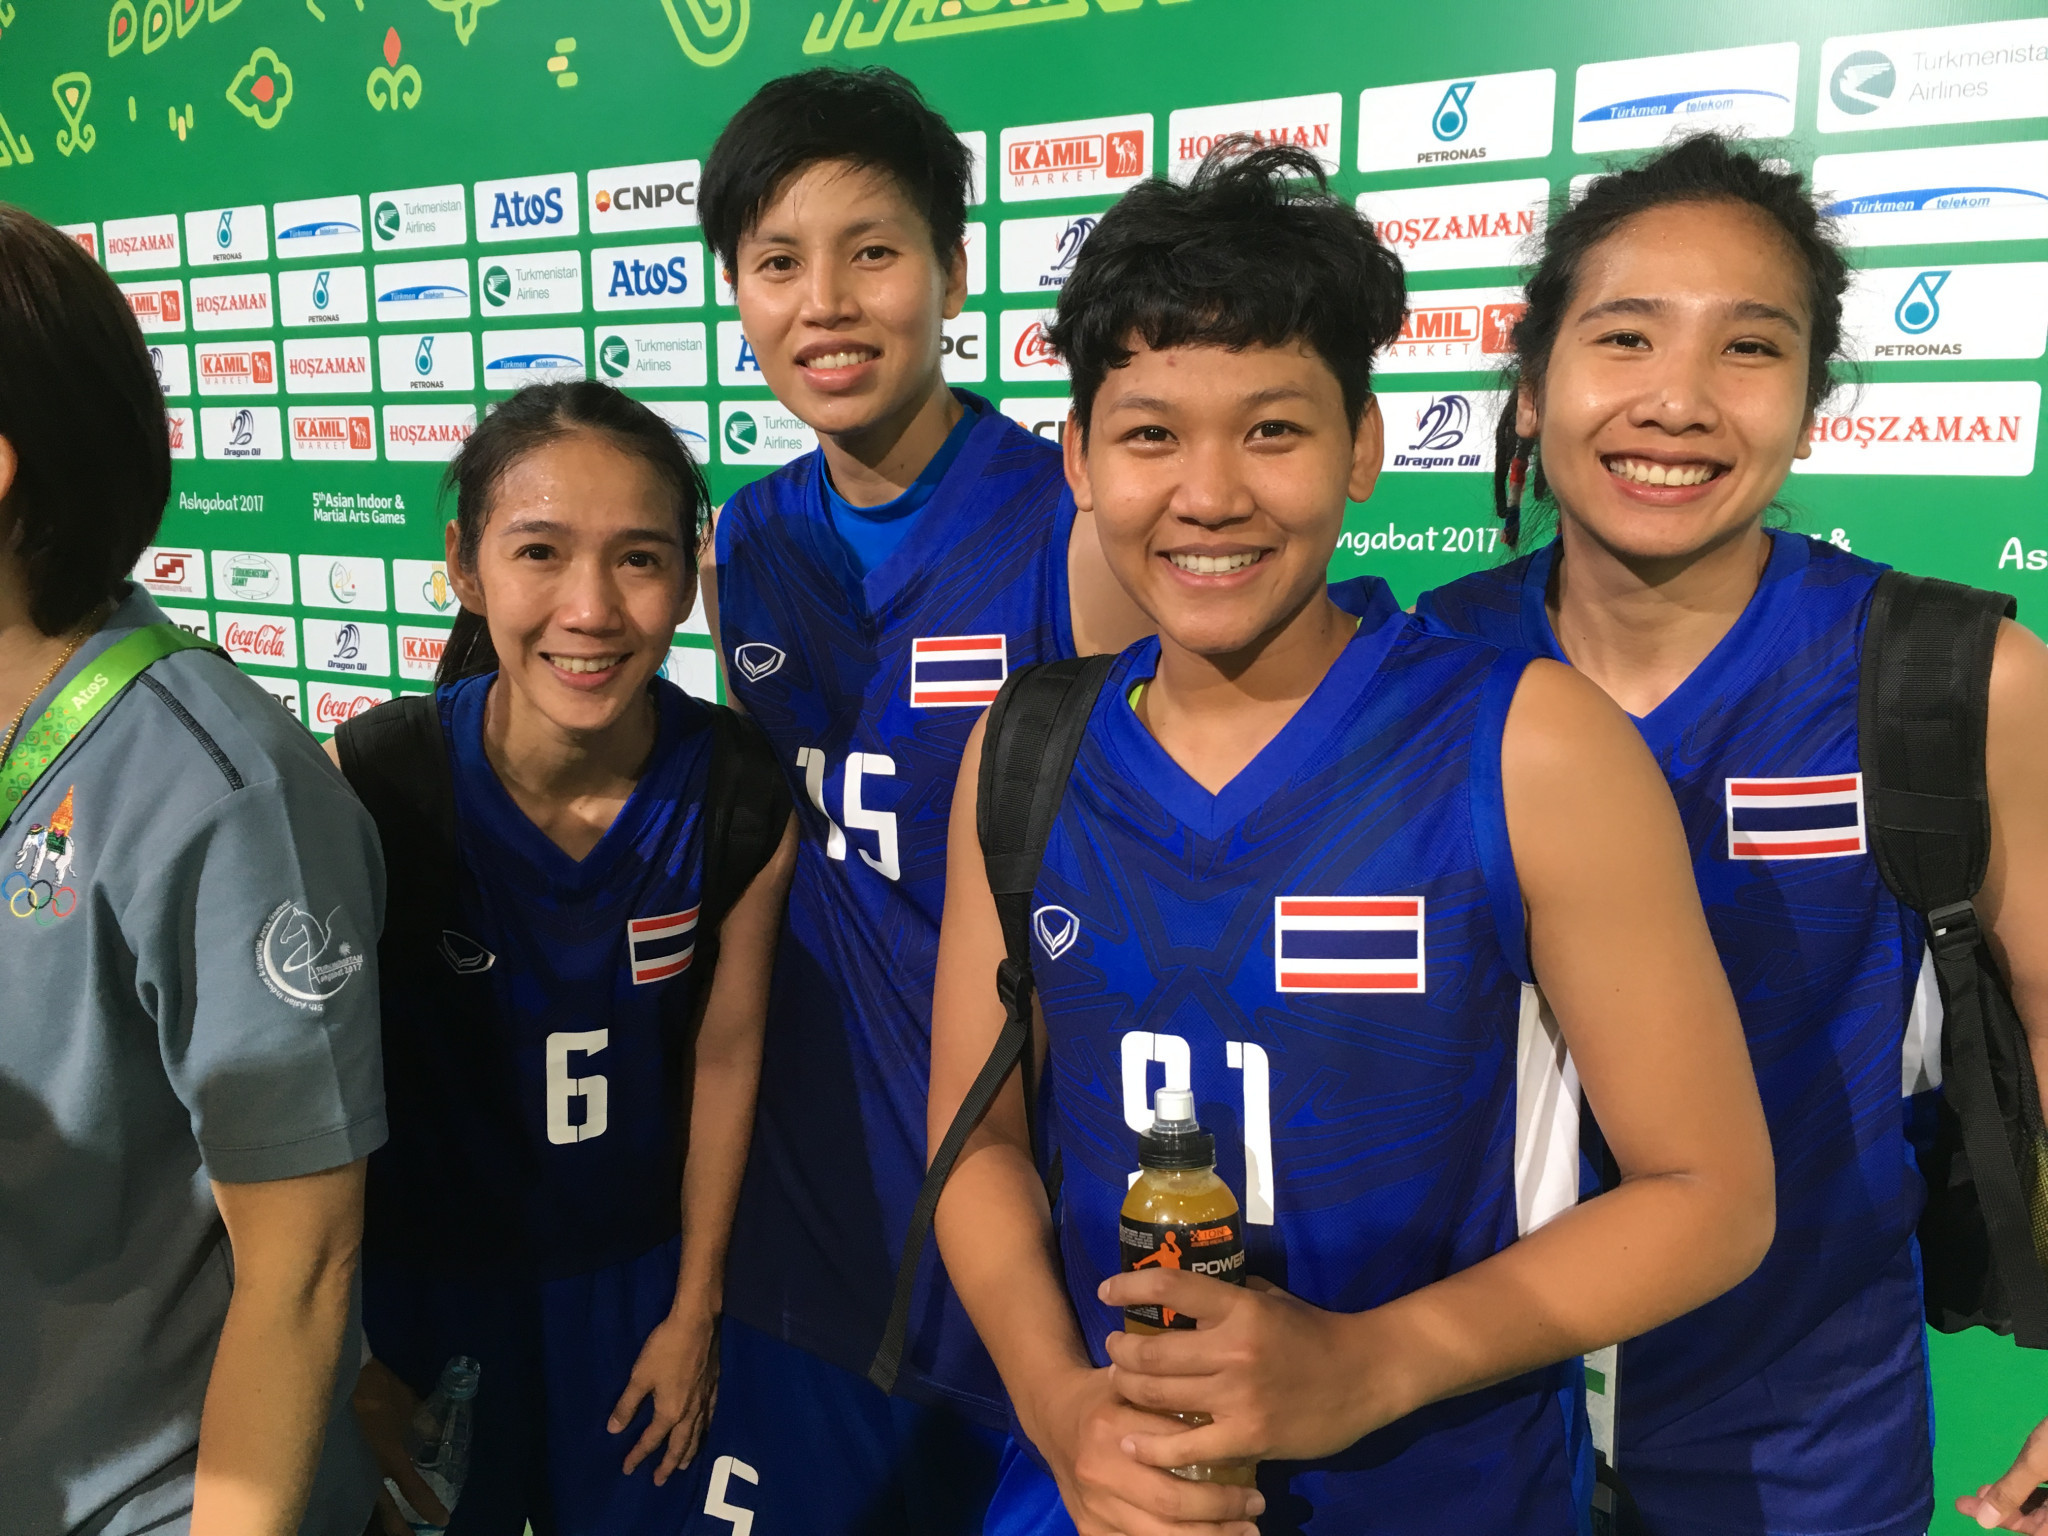 Thailand came out on top in the women's 3x3 basketball event ©Ashgabat 2017/Michael Church